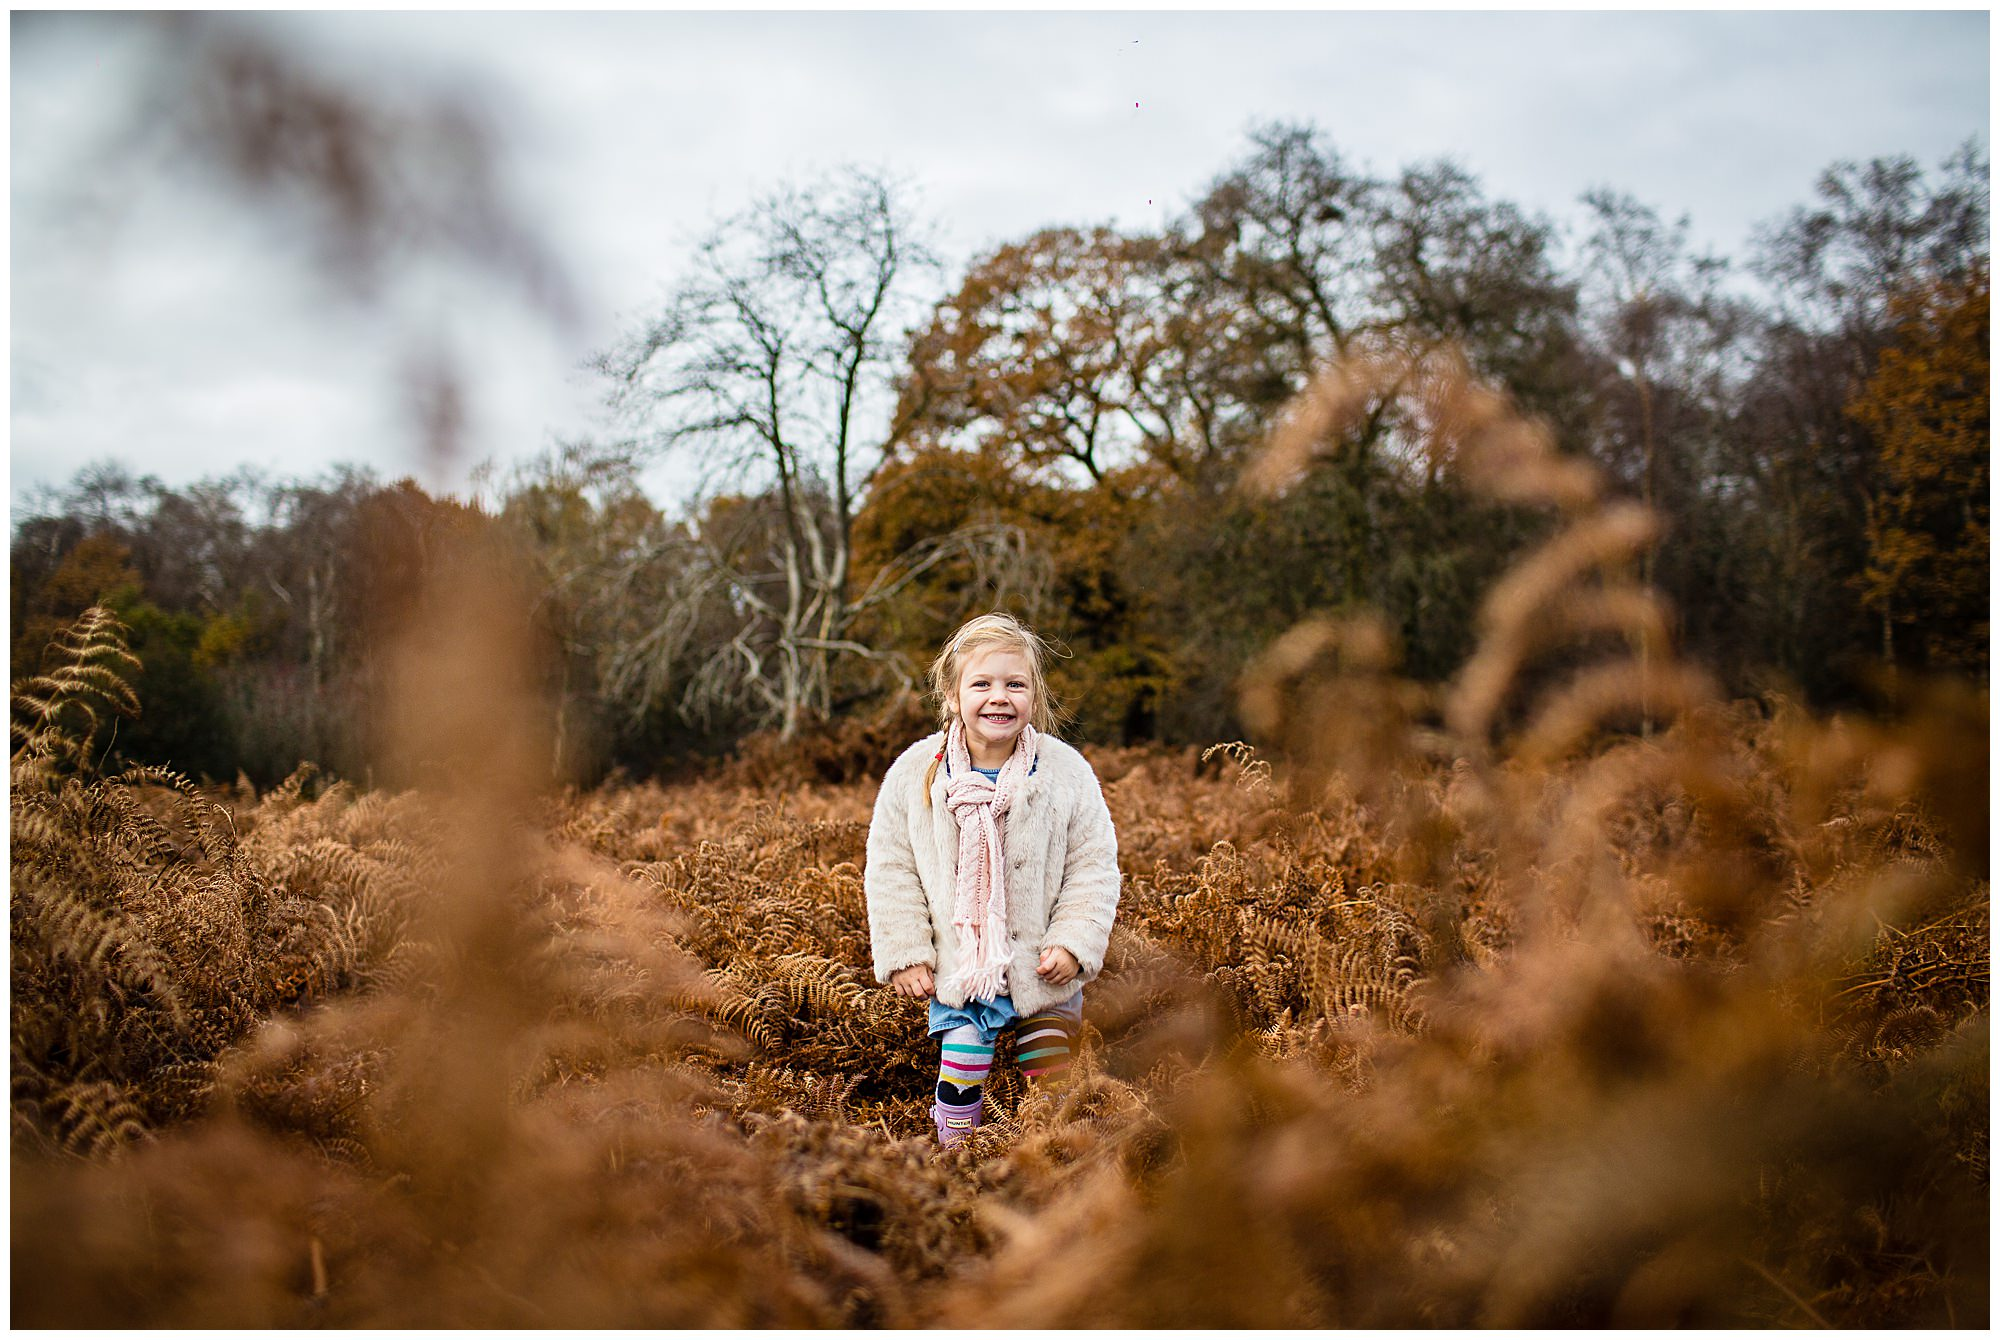 Shropshire Mini Shoots - Shropshire Photographer